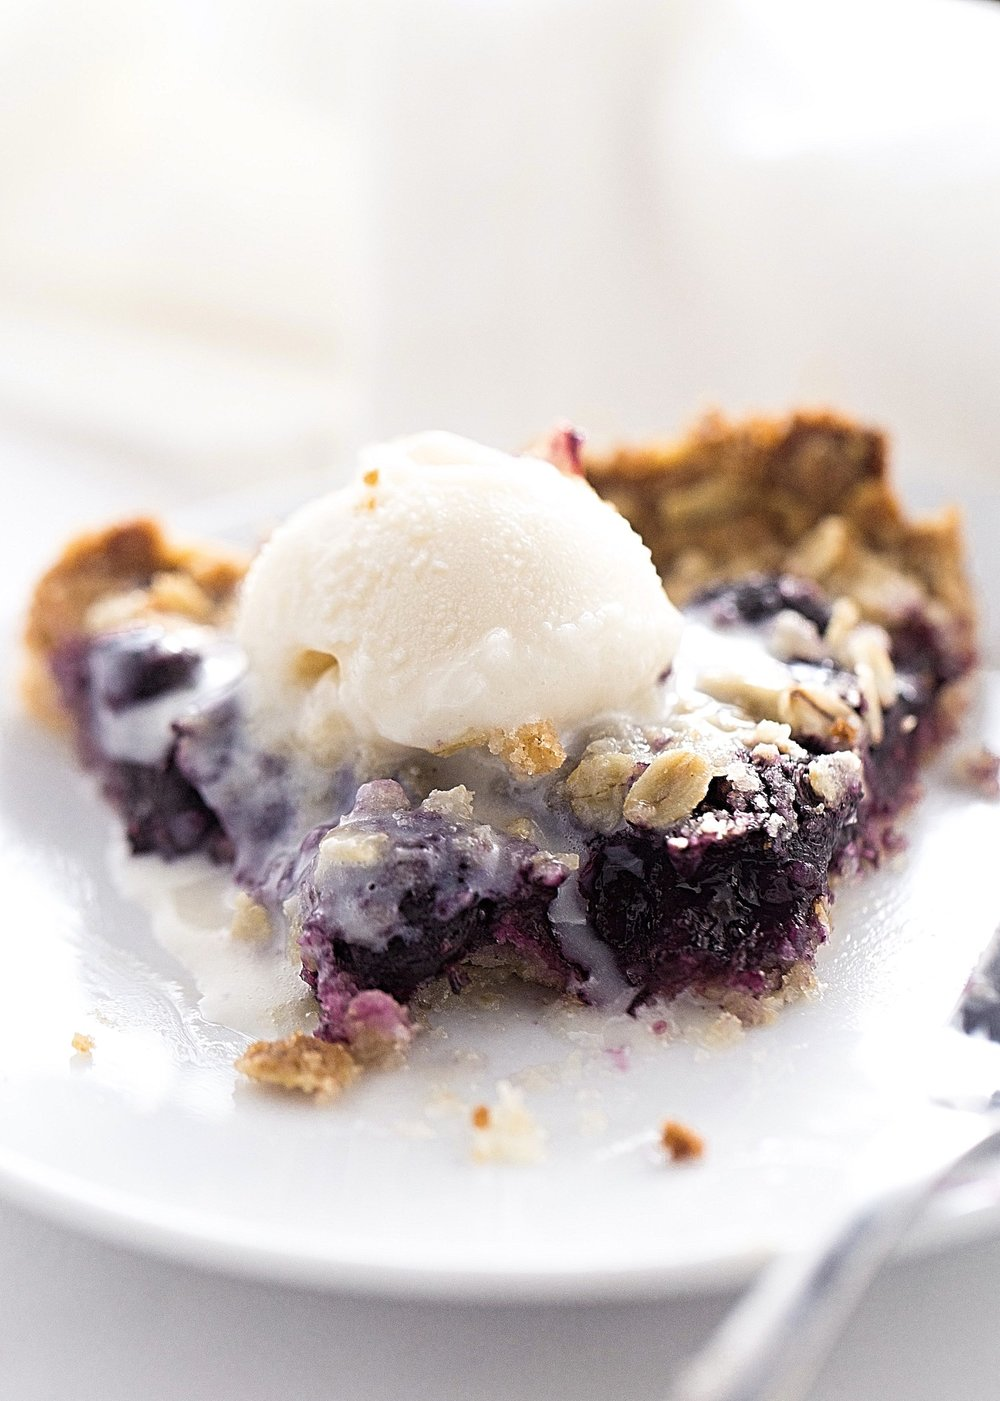 Blueberry Oat Crumble Tart: hearty, crunchy, oat crust topped with tart, juicy blueberries and more crumble on top. Video Included! | TrufflesandTrends.com